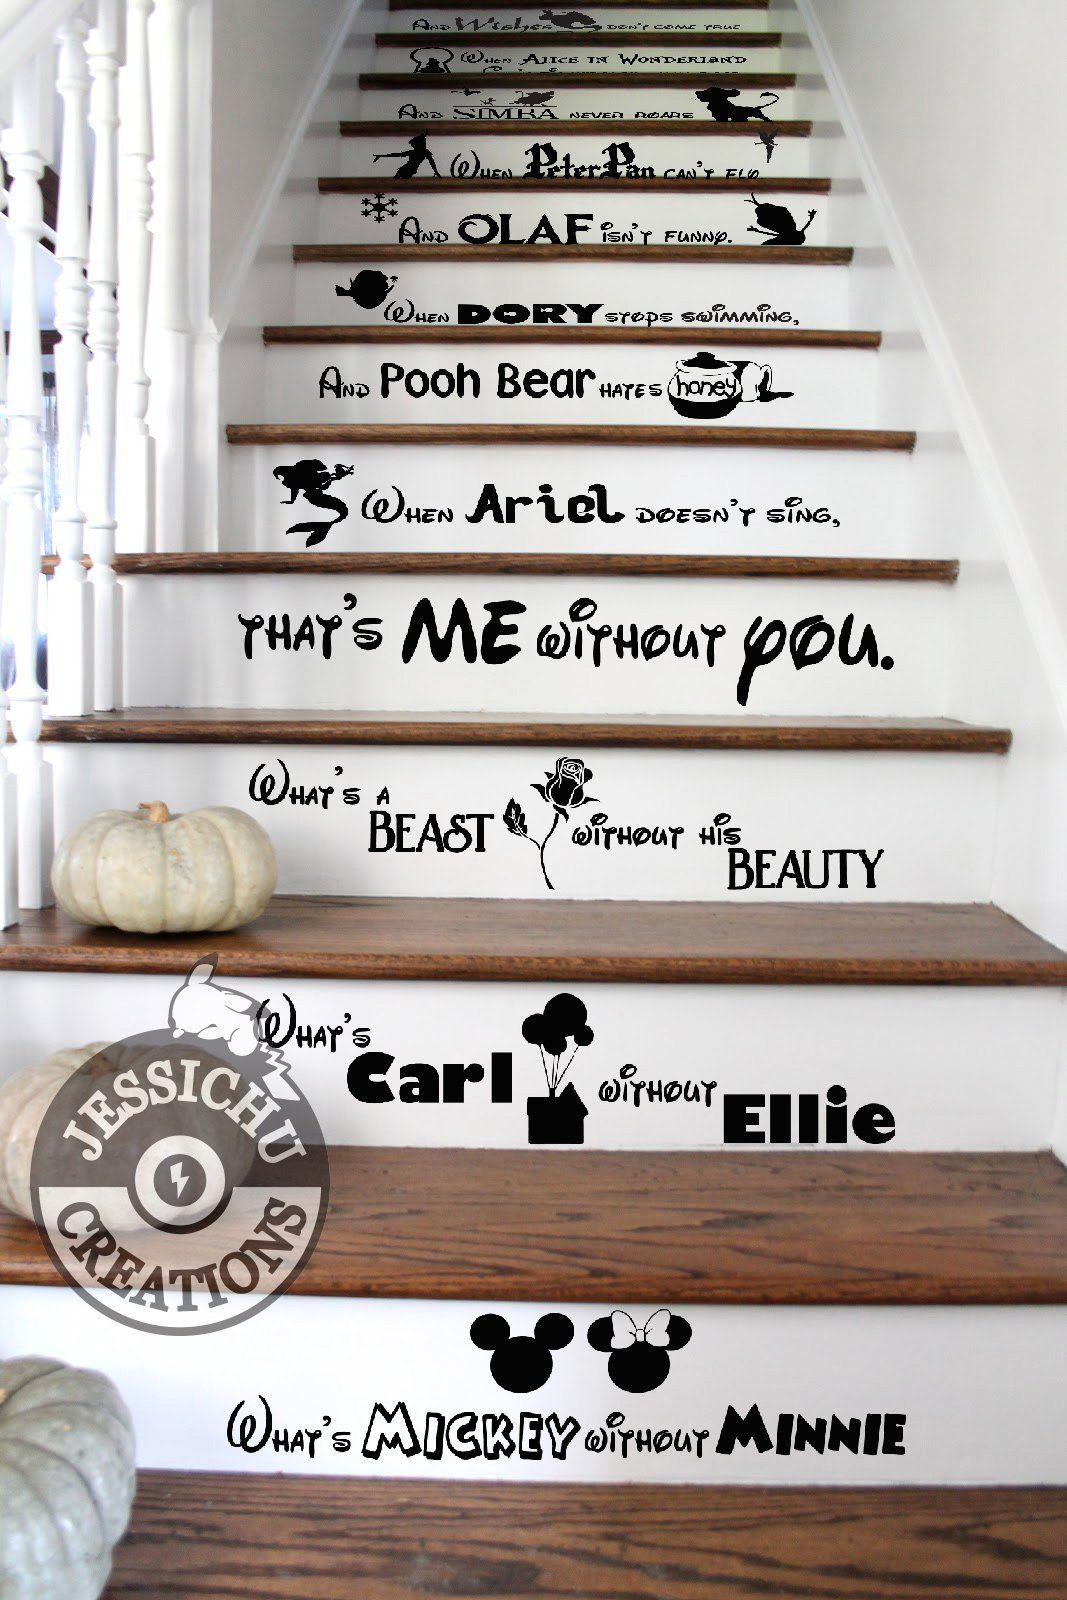 What S Mickey Without Minnie Stairs Vinyl Decal Home Decor Disney Home Disney Home Decor Disney Decor